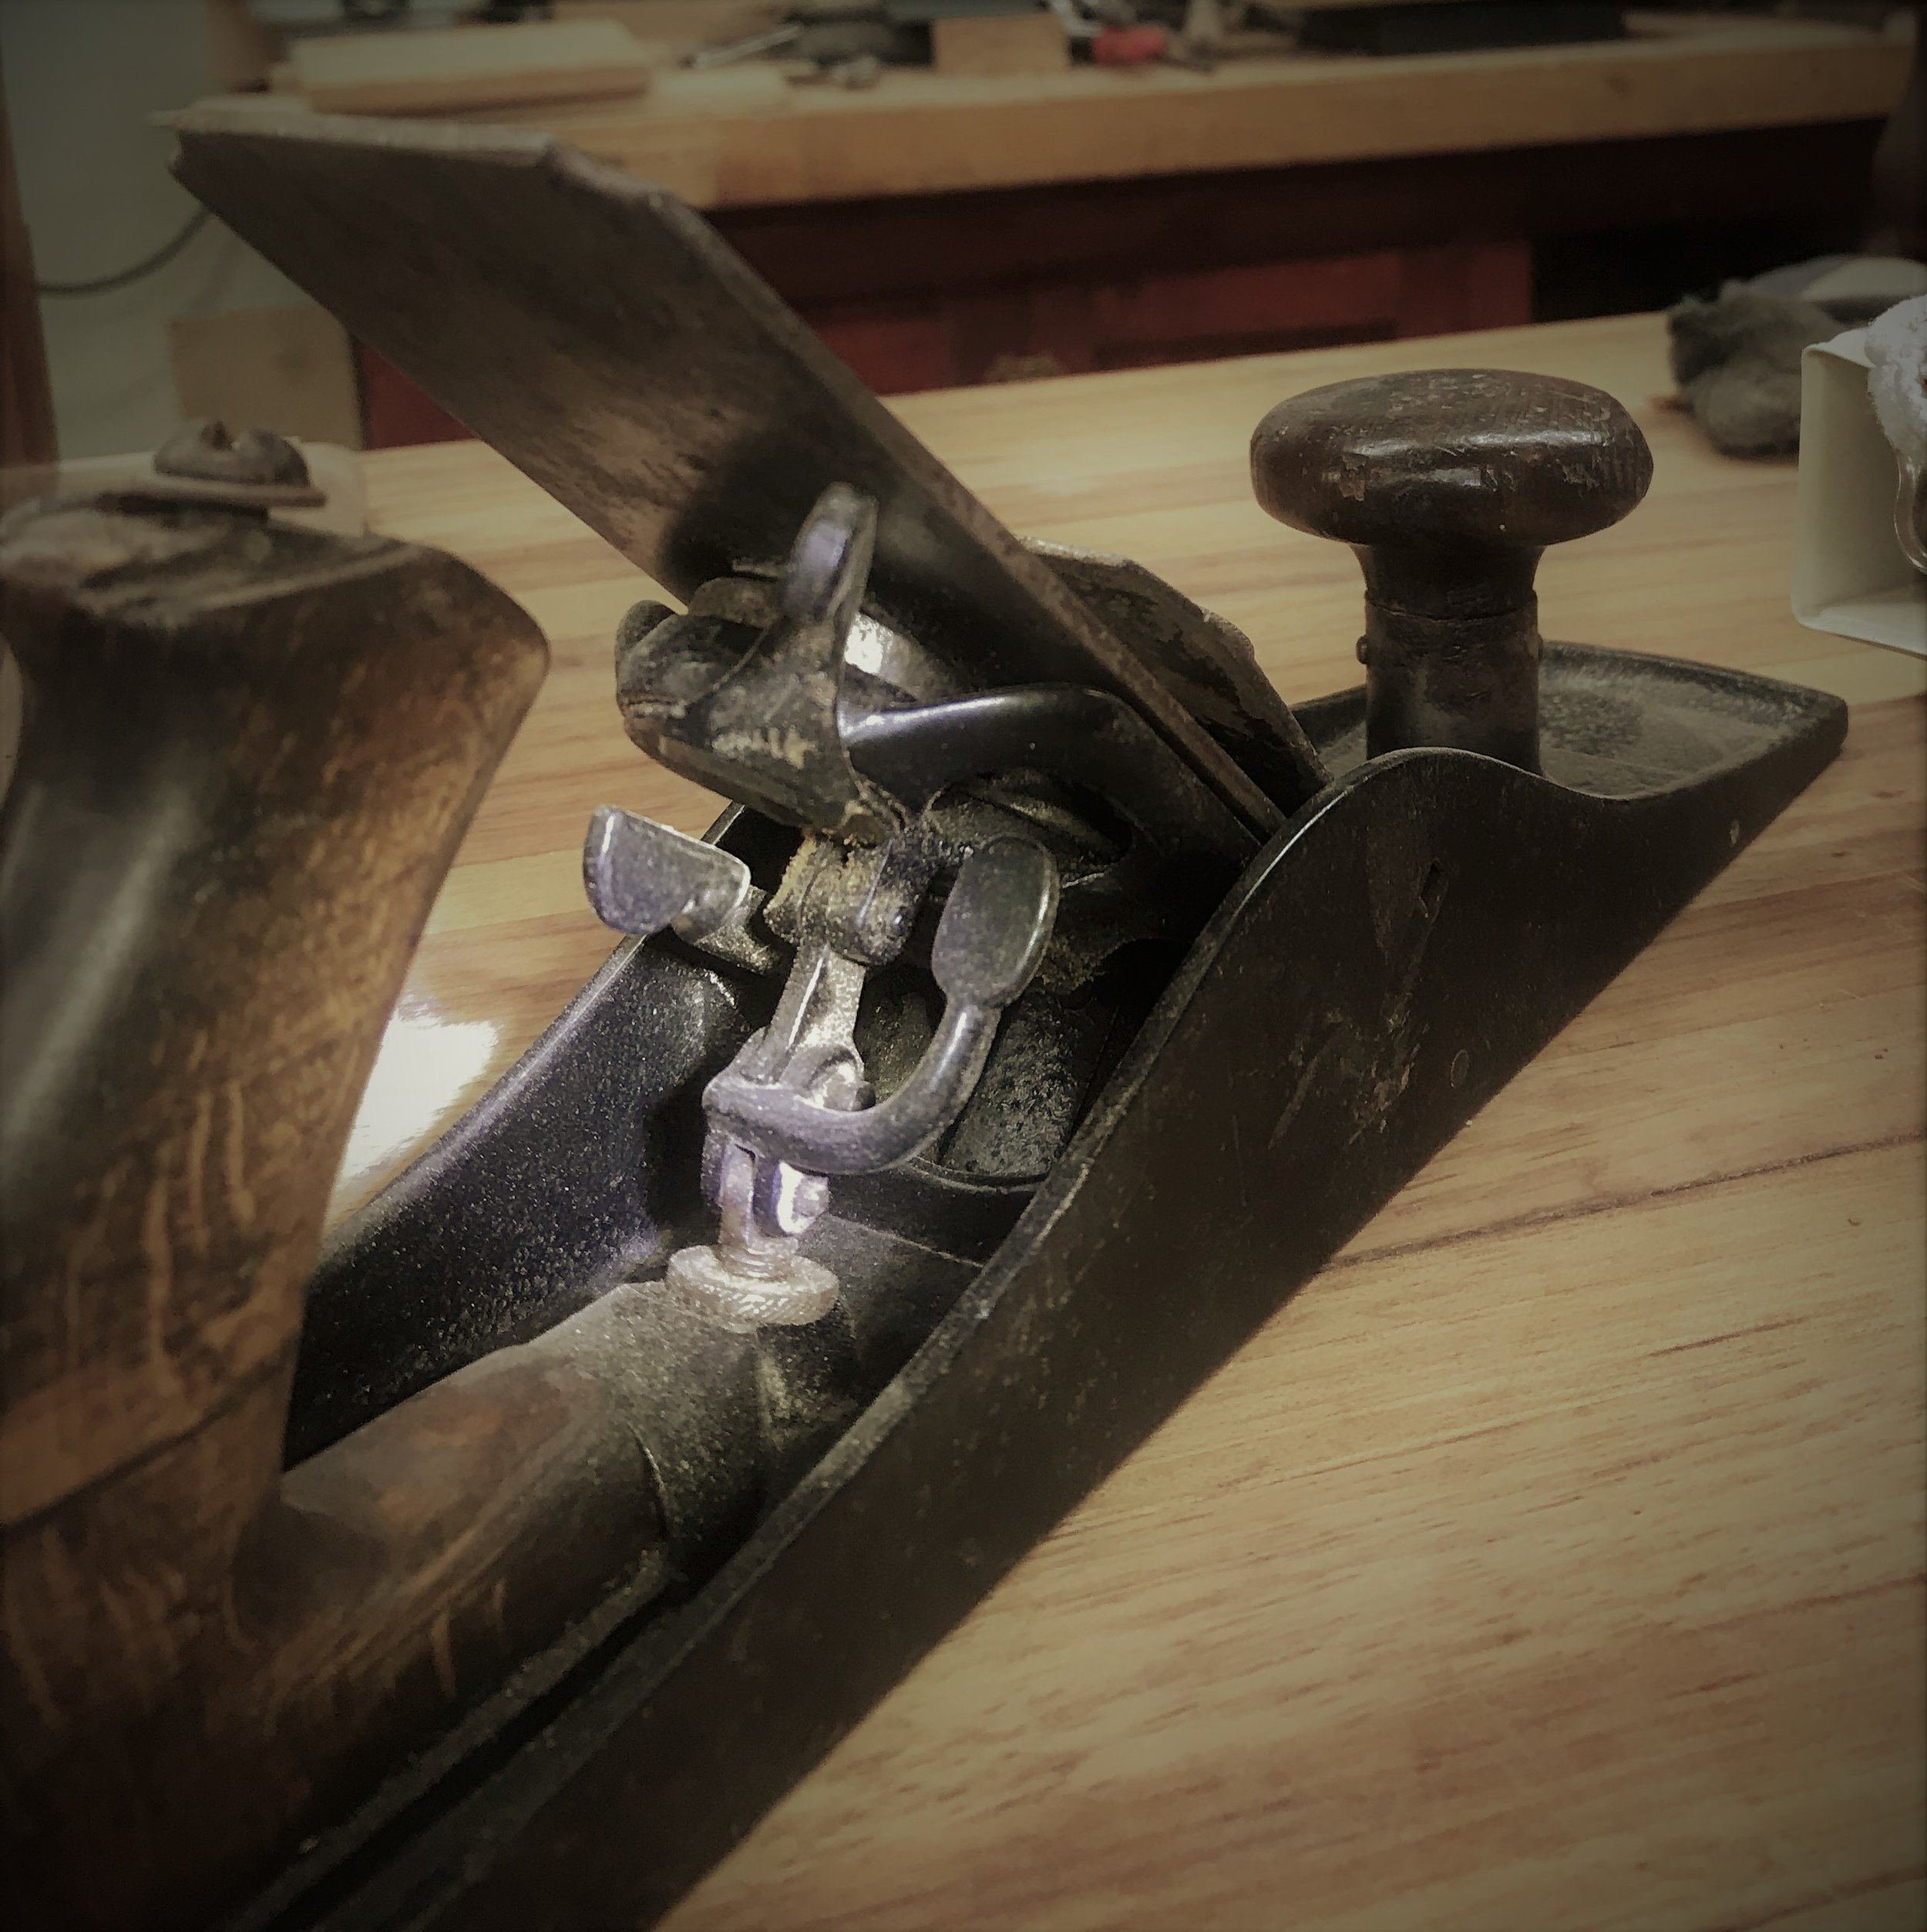 Nelson Palmer's three-lever adjustment system--a different way to operate a hand plane.